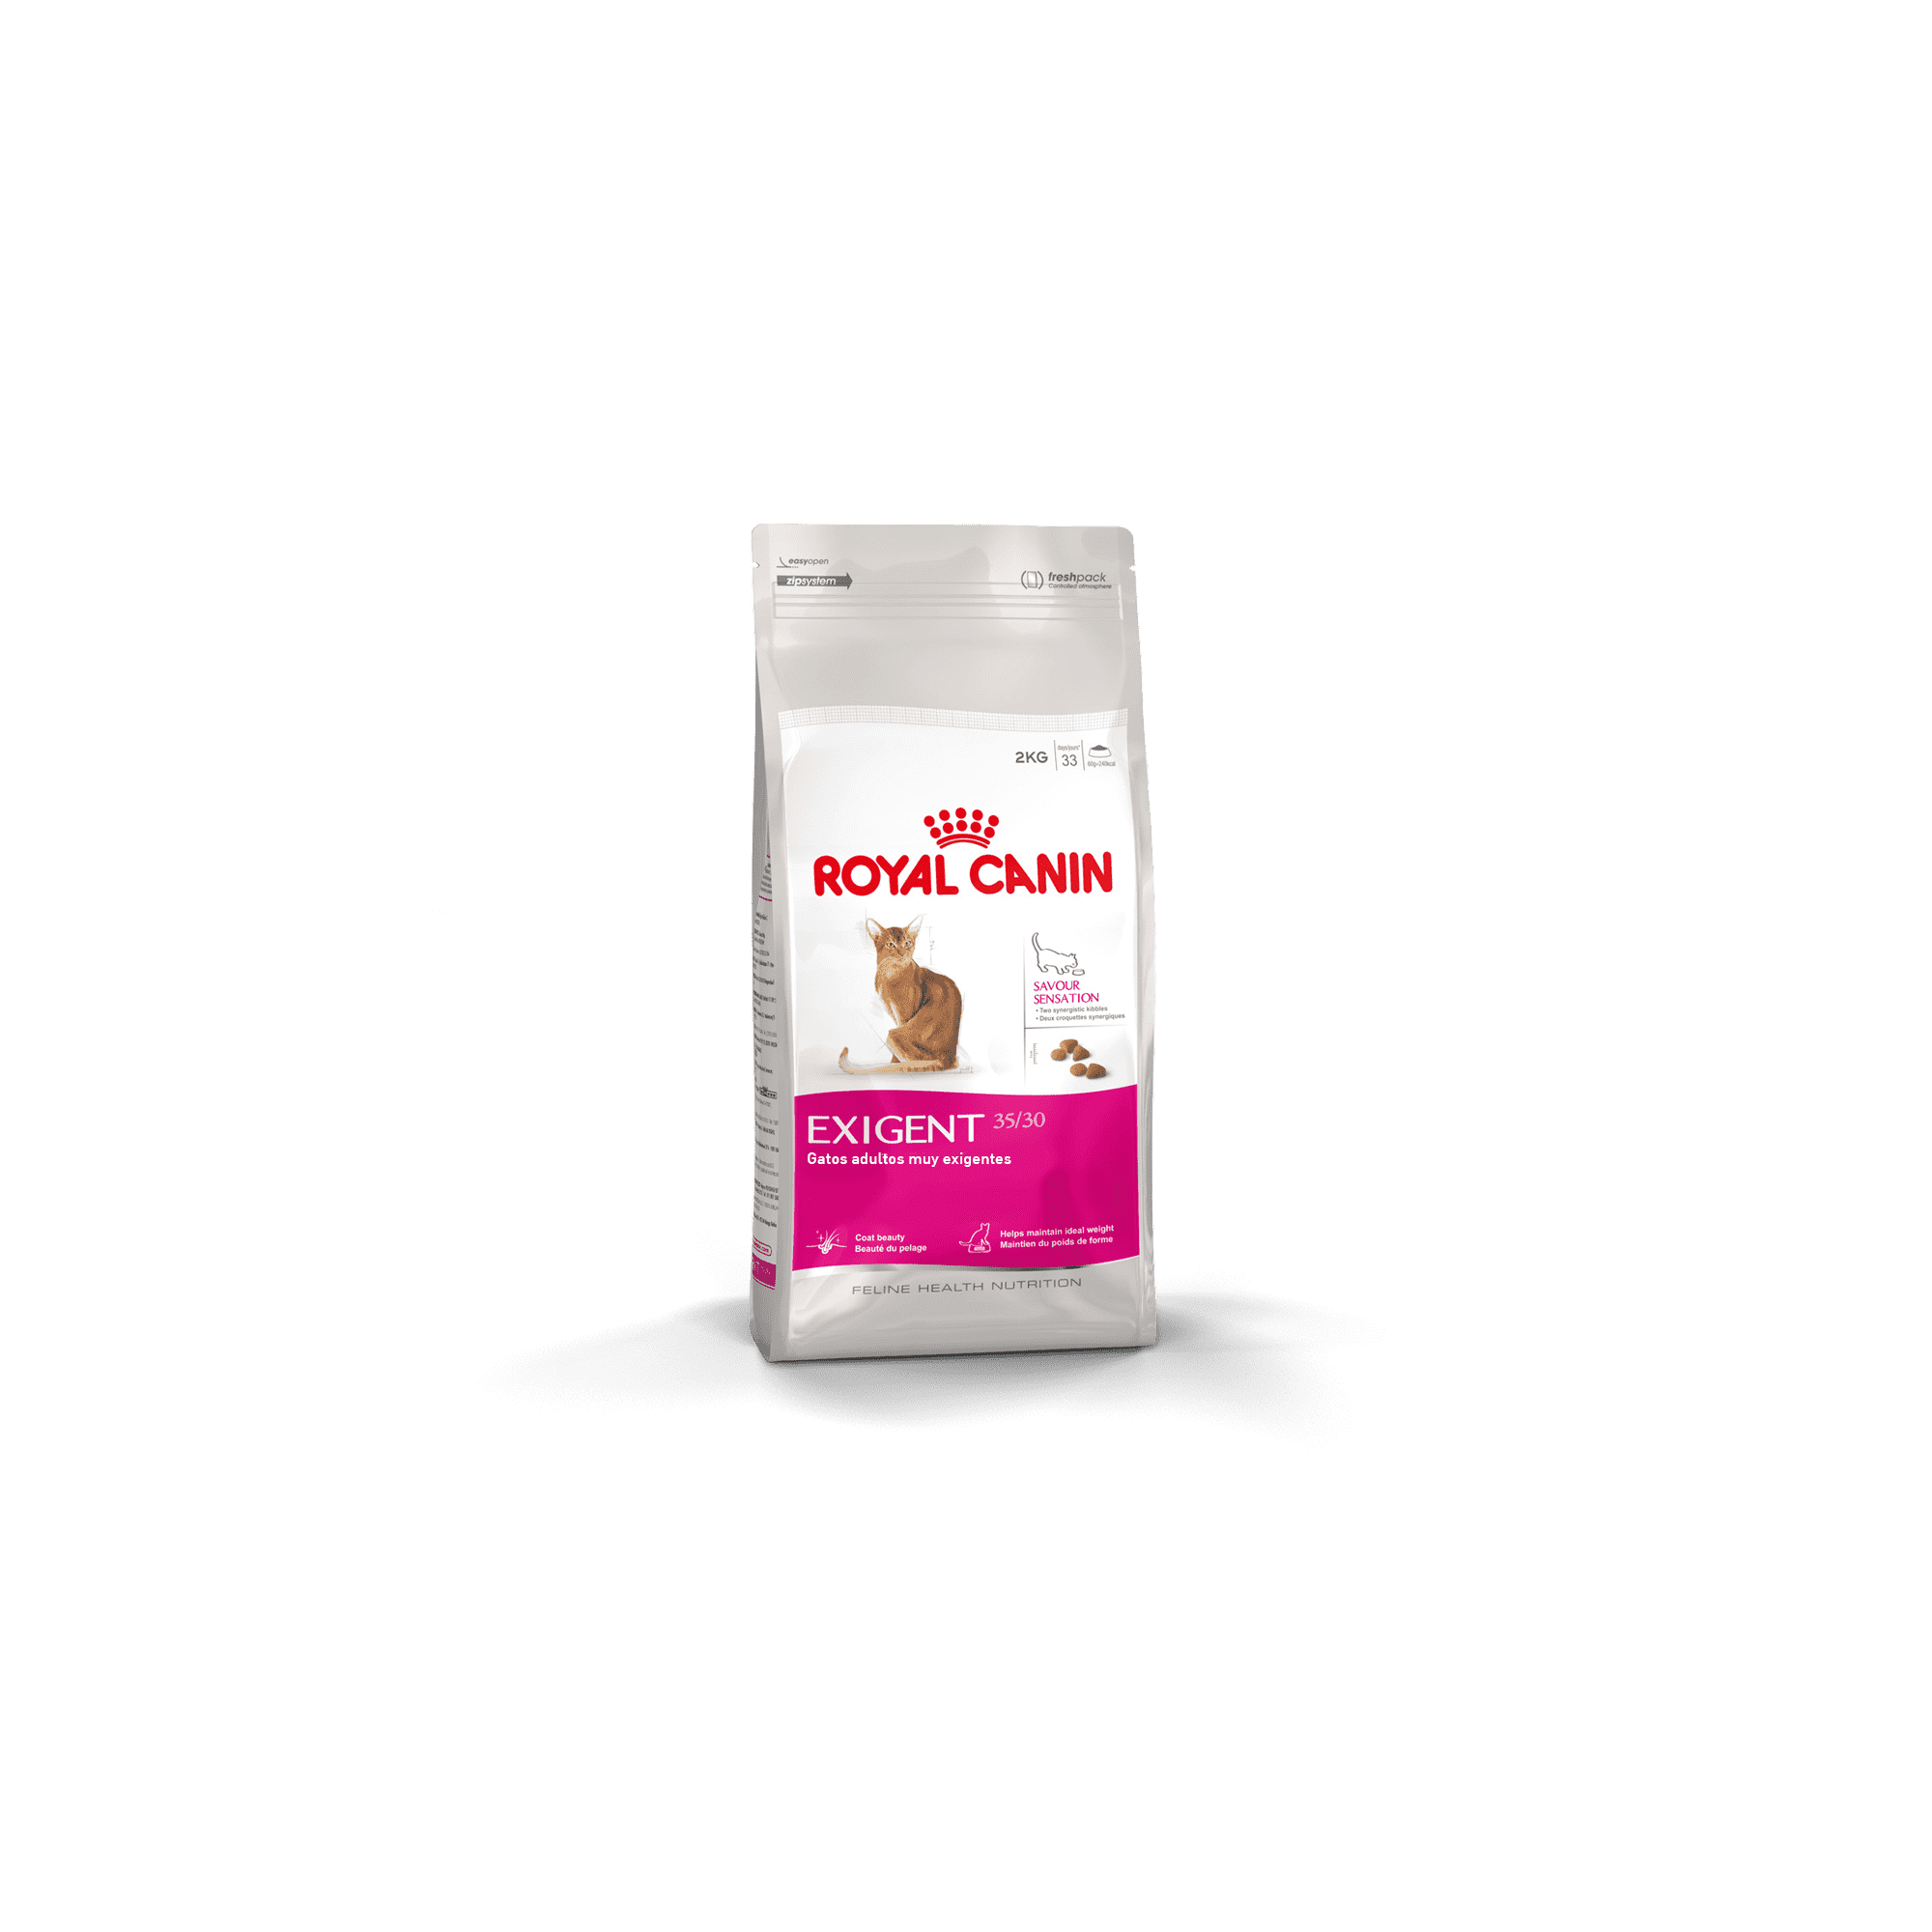 Royal Canin Exigent 2Kg - Clínica Veterinaria Chicureo